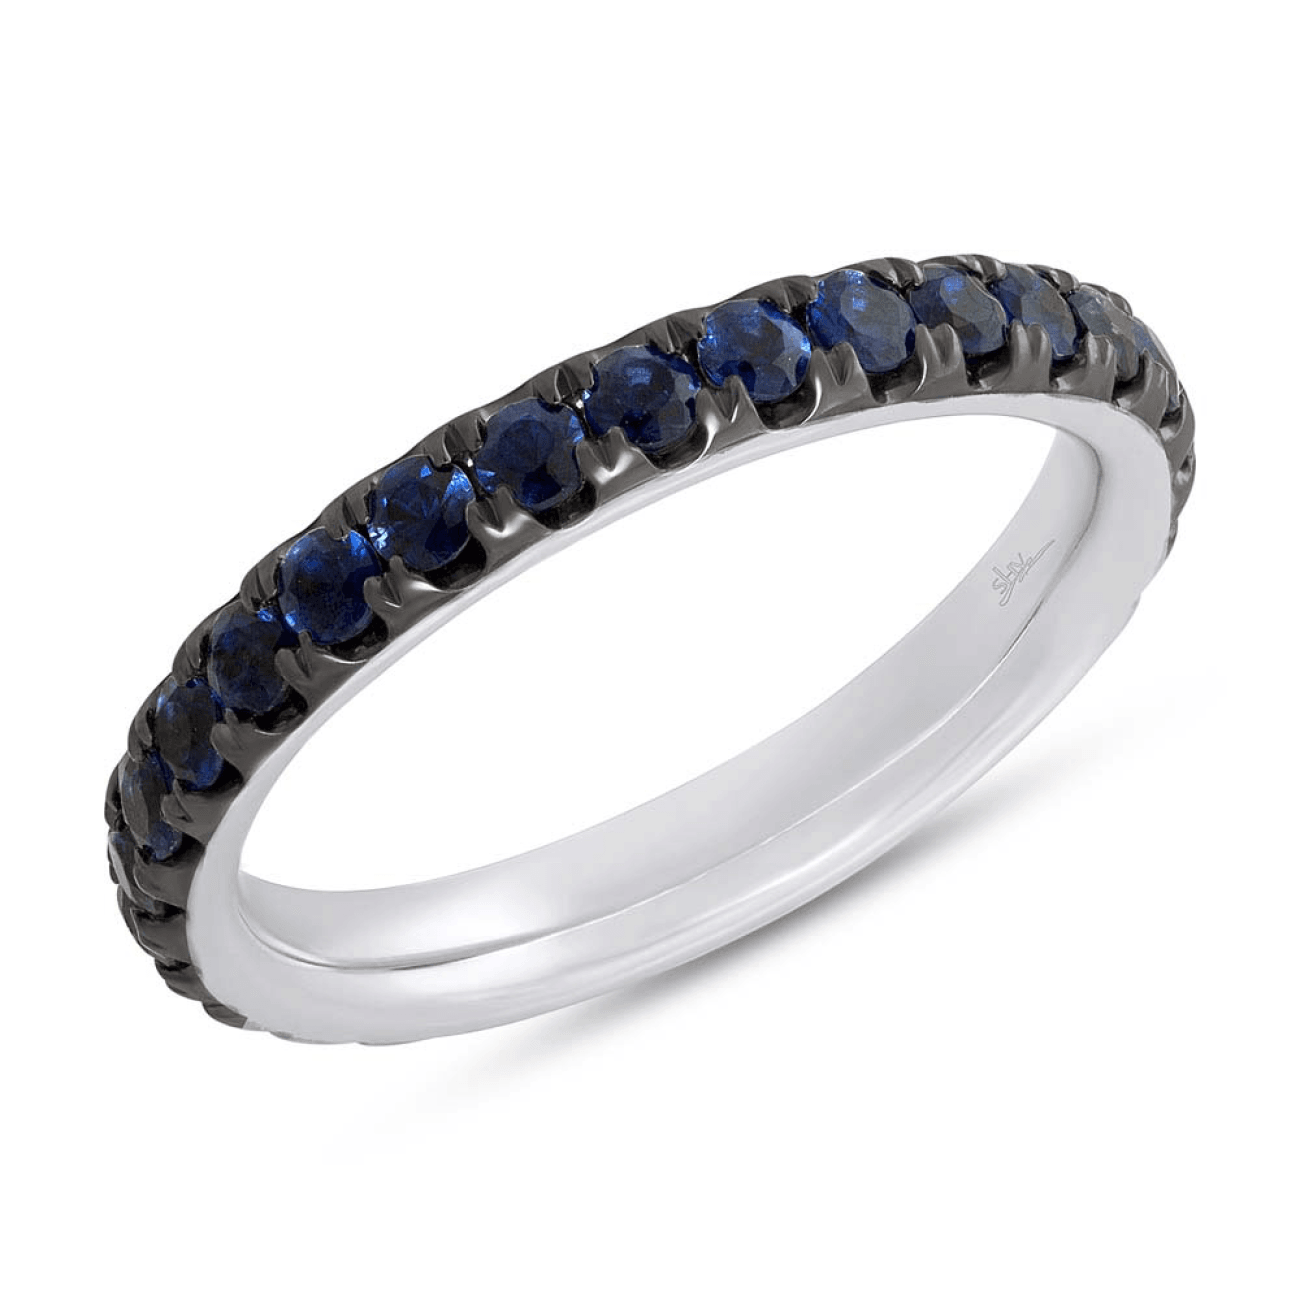 Shy Creation Jewelry - White Gold Blue Sapphire Eternity Band | Manfredi Jewels